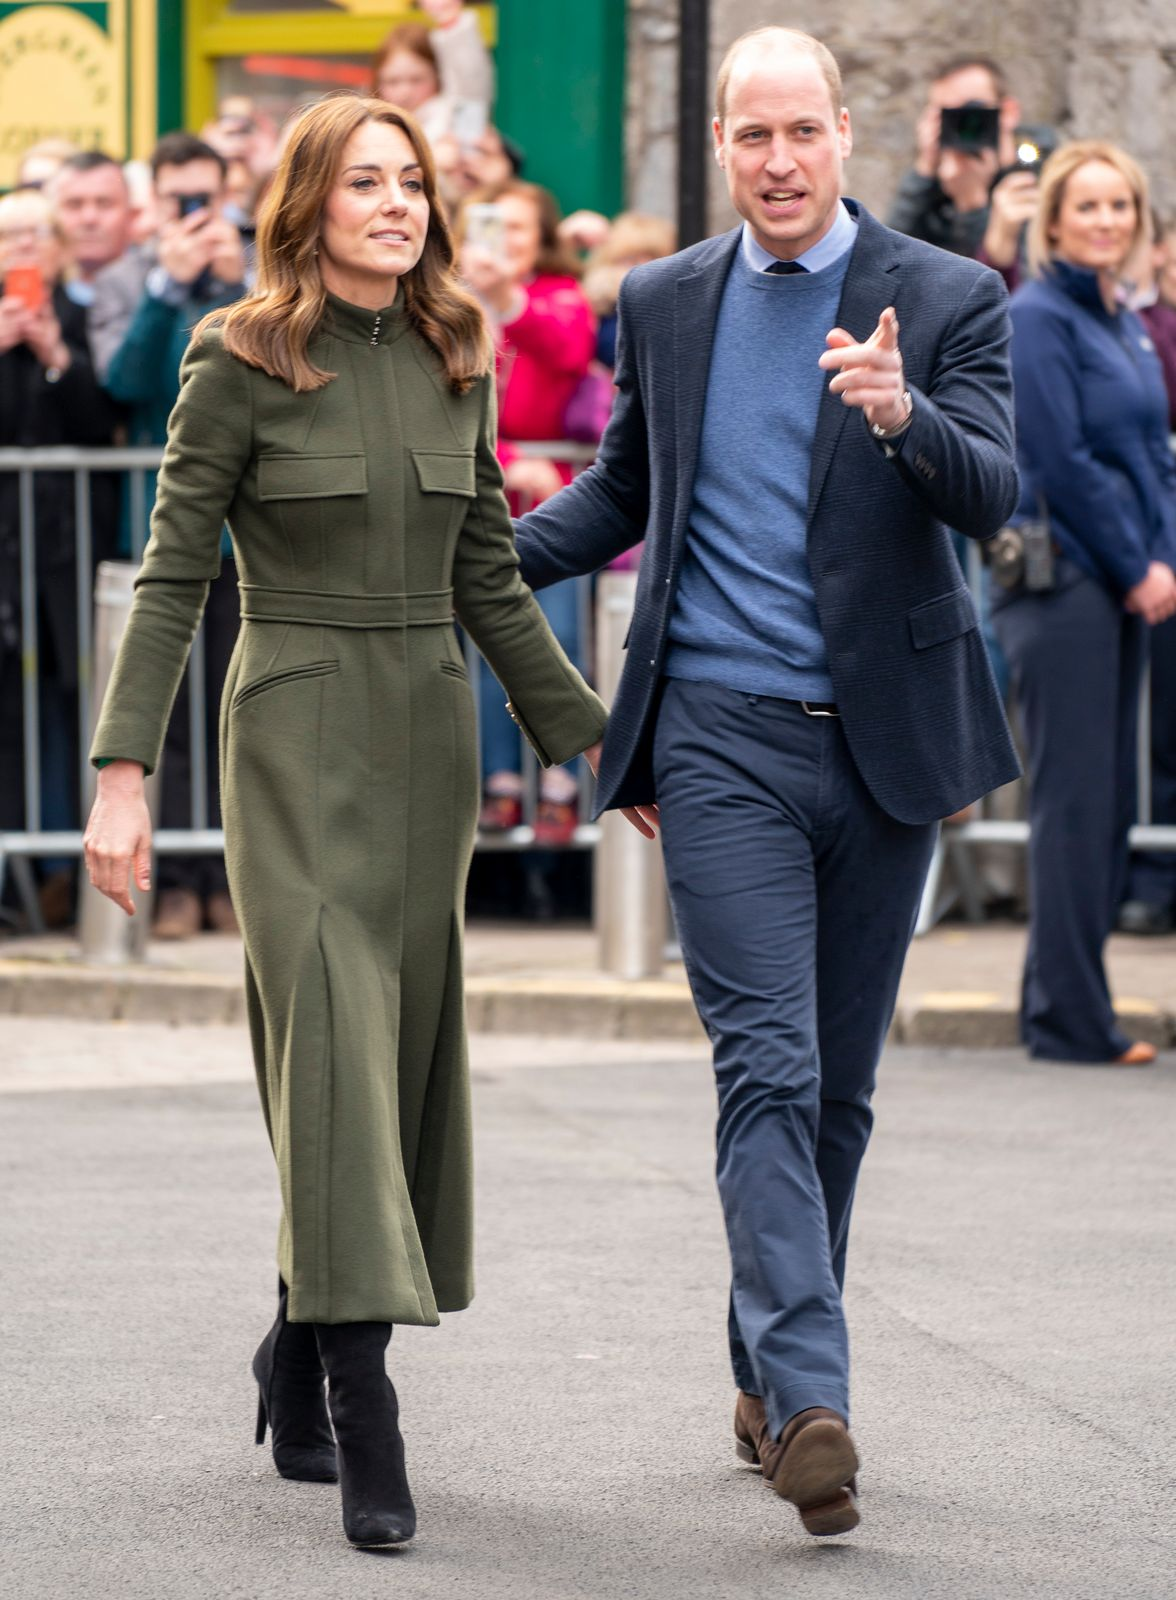 Prince William and Kate Middleton meet members of the public gathered on King Street during day three of their visit to Ireland on March 5, 2020   Photo: Getty Images